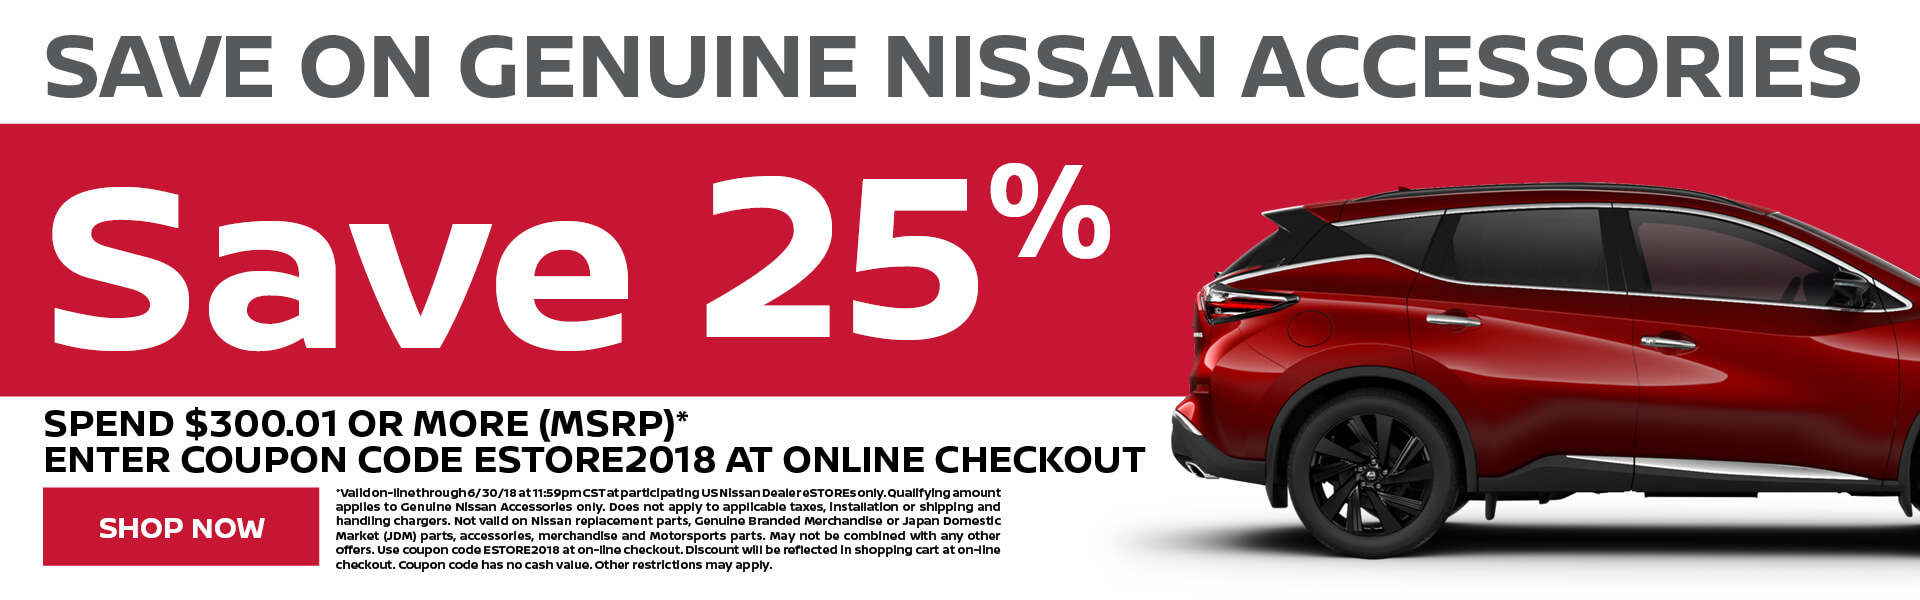 Nissan Accessories 25% Off